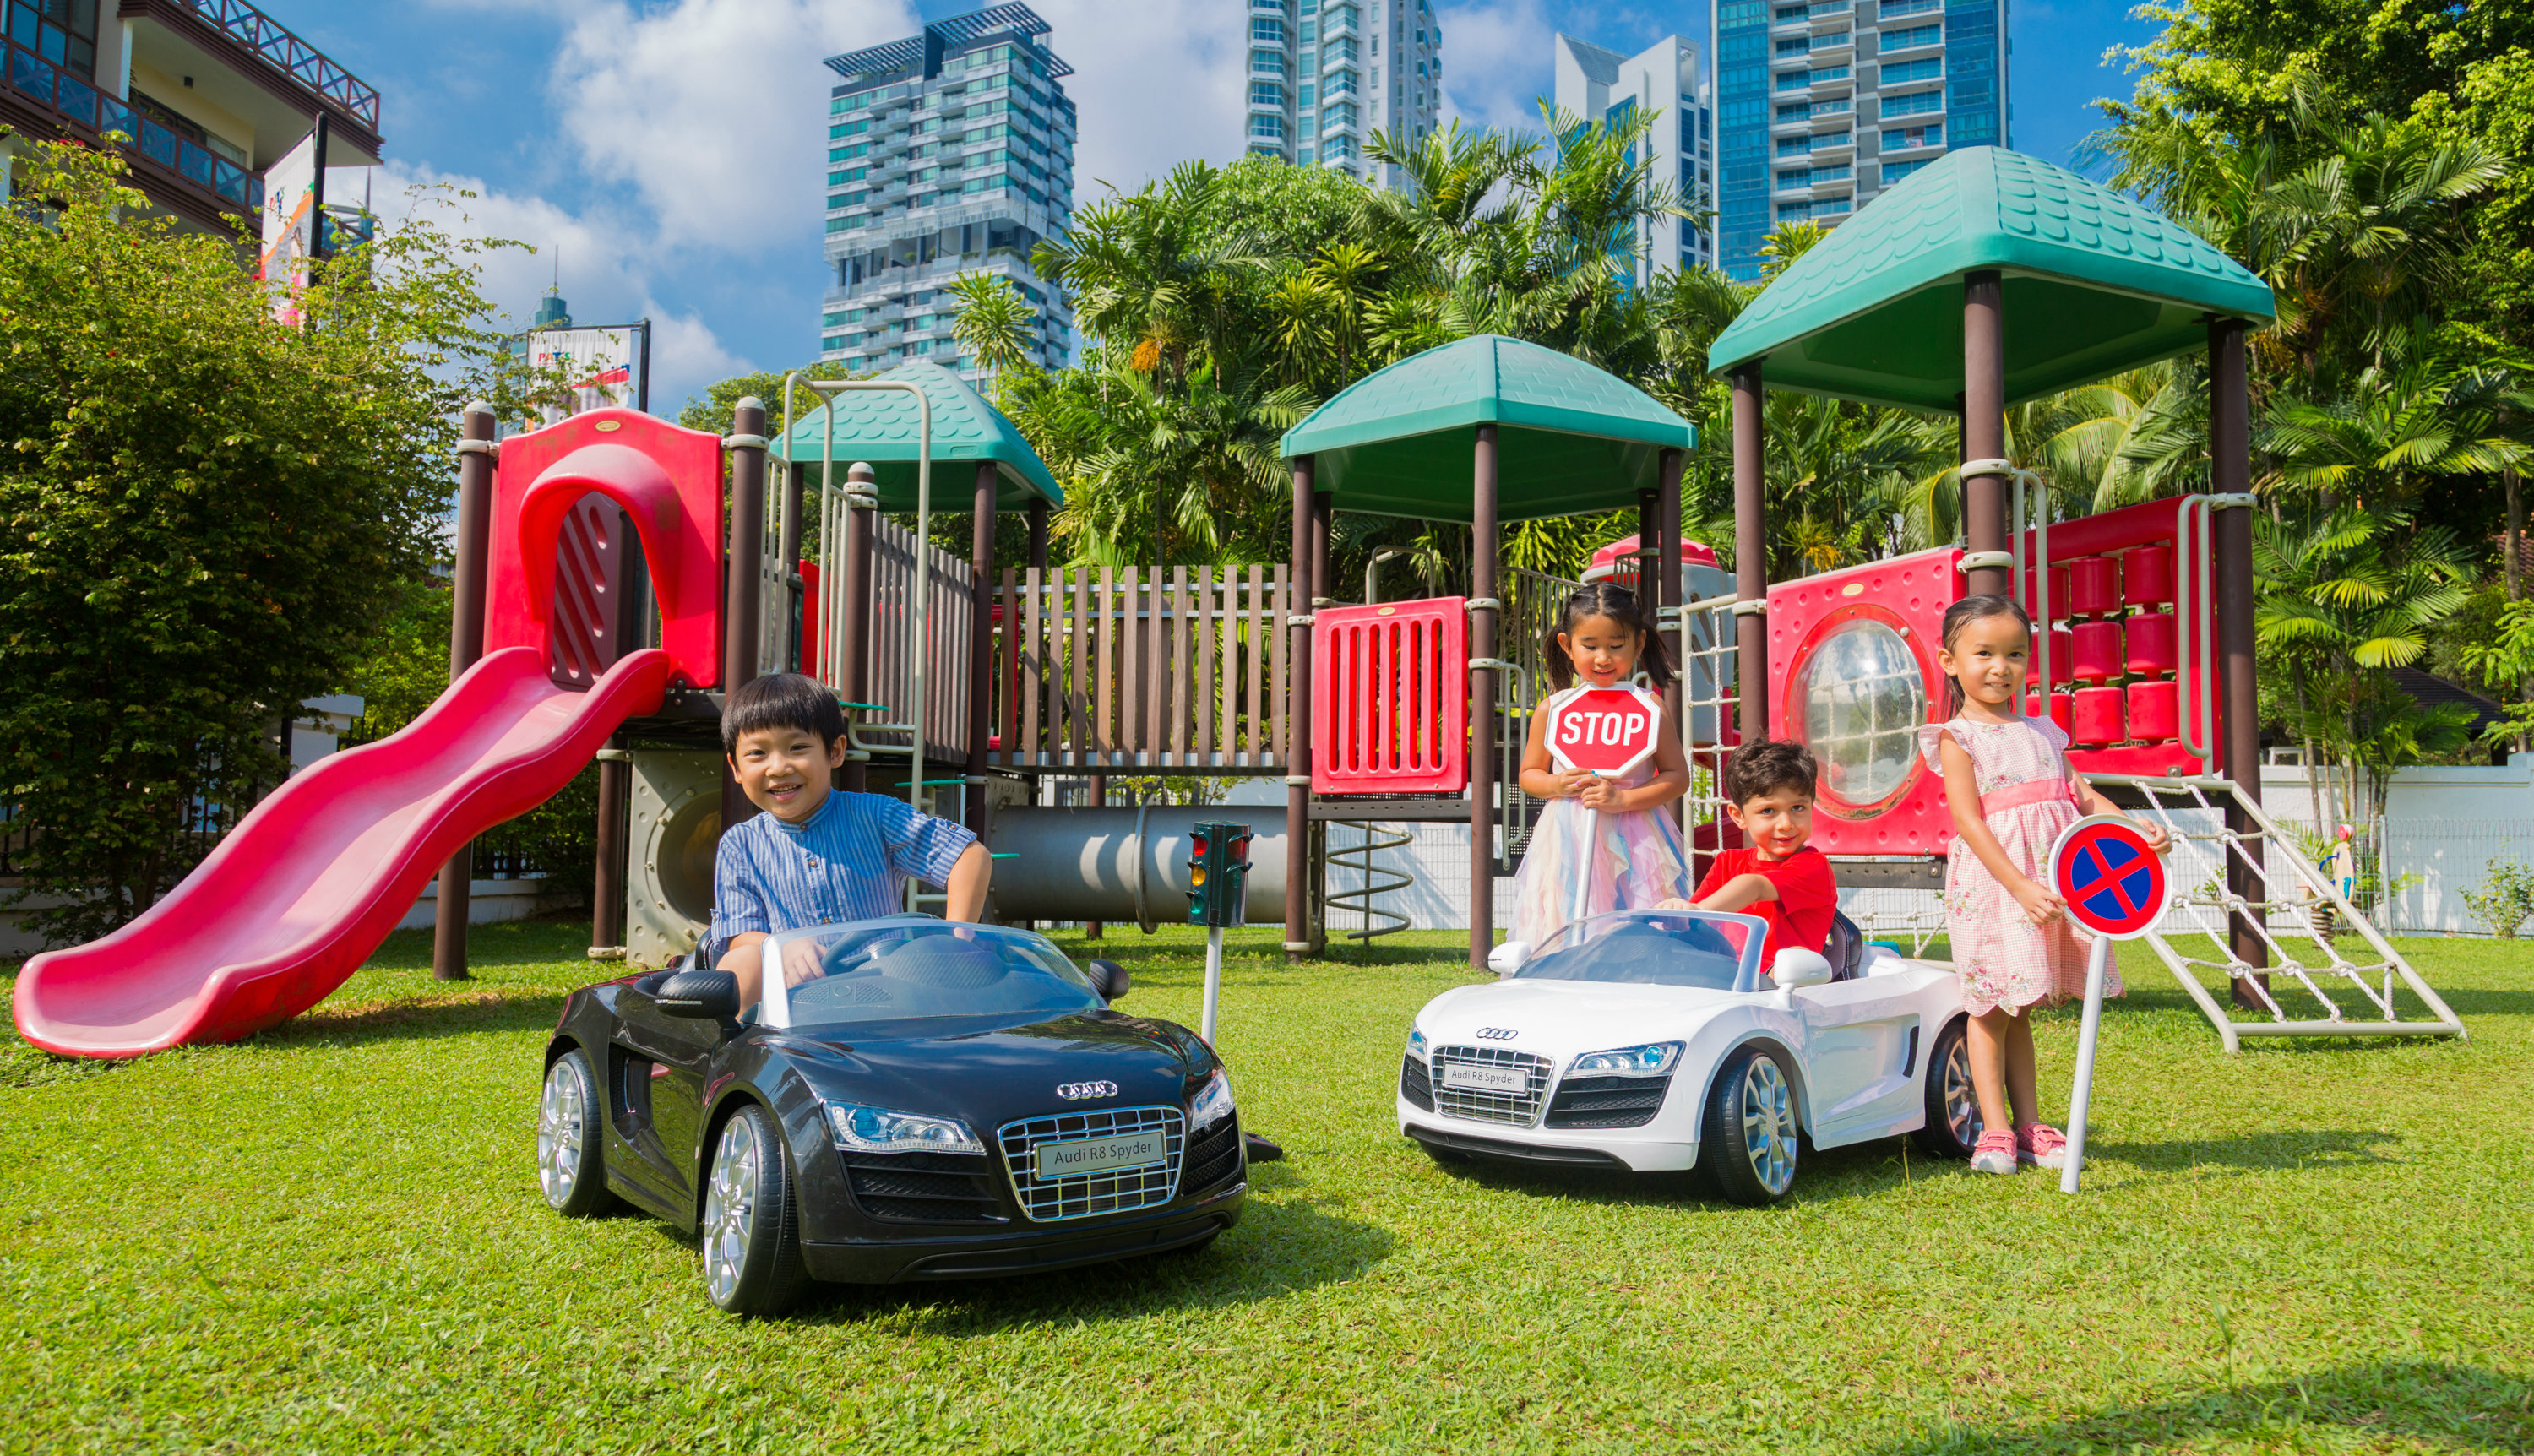 When it comes to cars, the more the merrier for this female petrolhead, but when it comes to kids, she is happy to have just one.